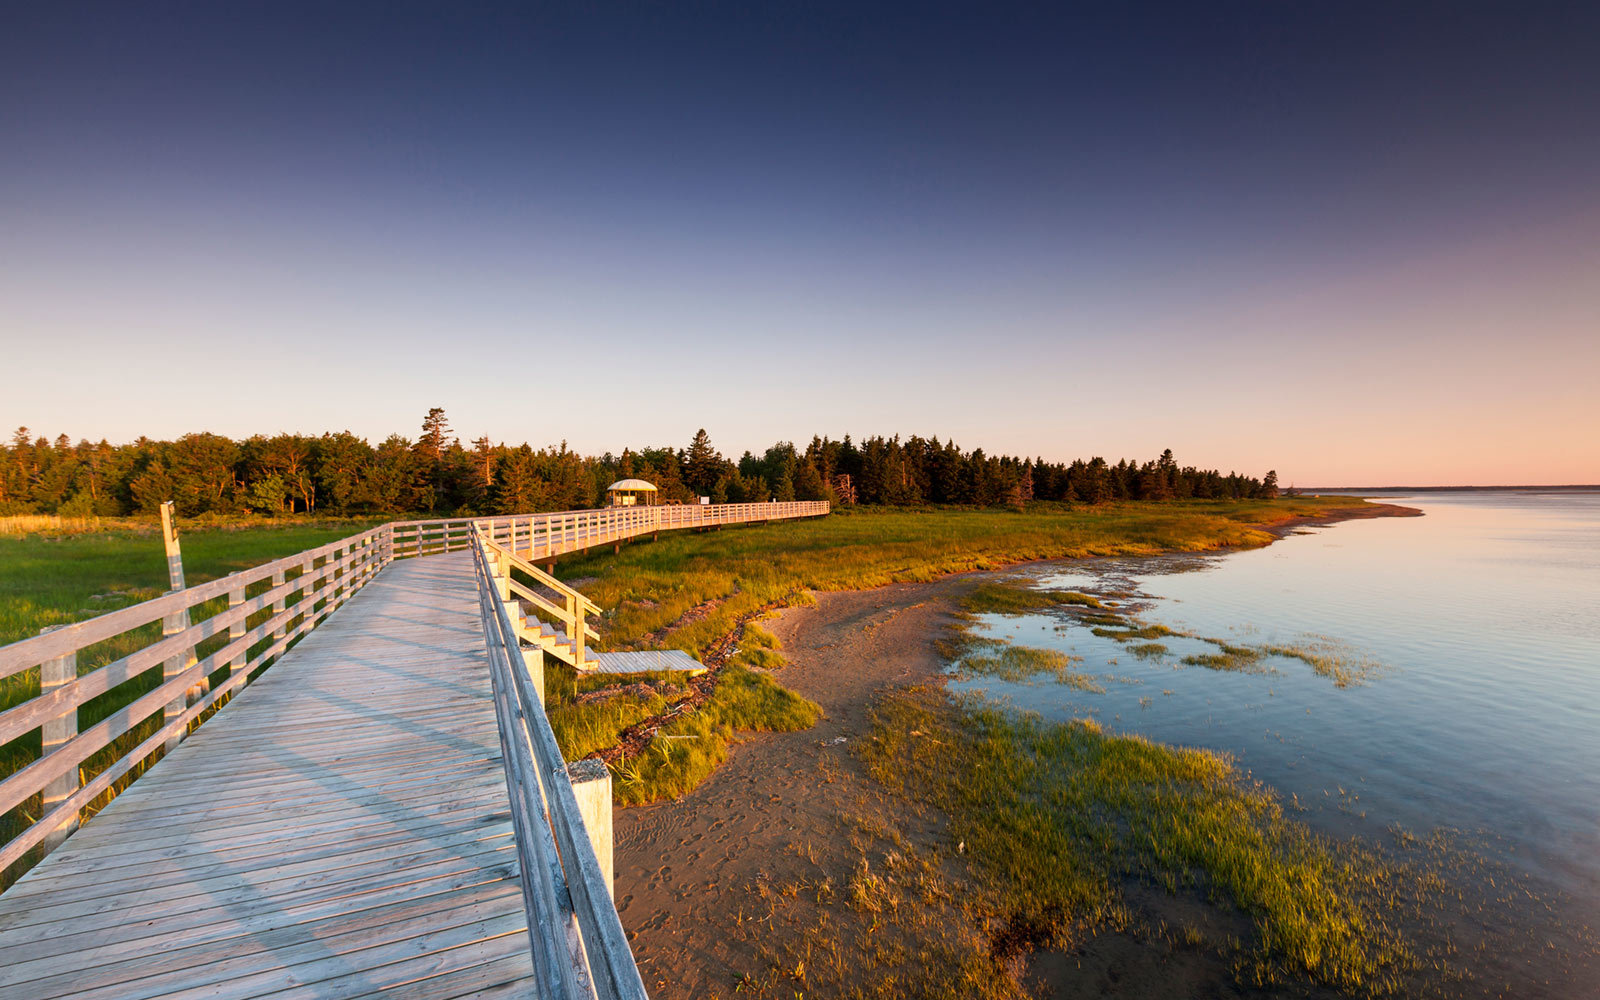 Kellys Beach Boardwalk, Kouchibouguac National Park, New Brunswick, Canada